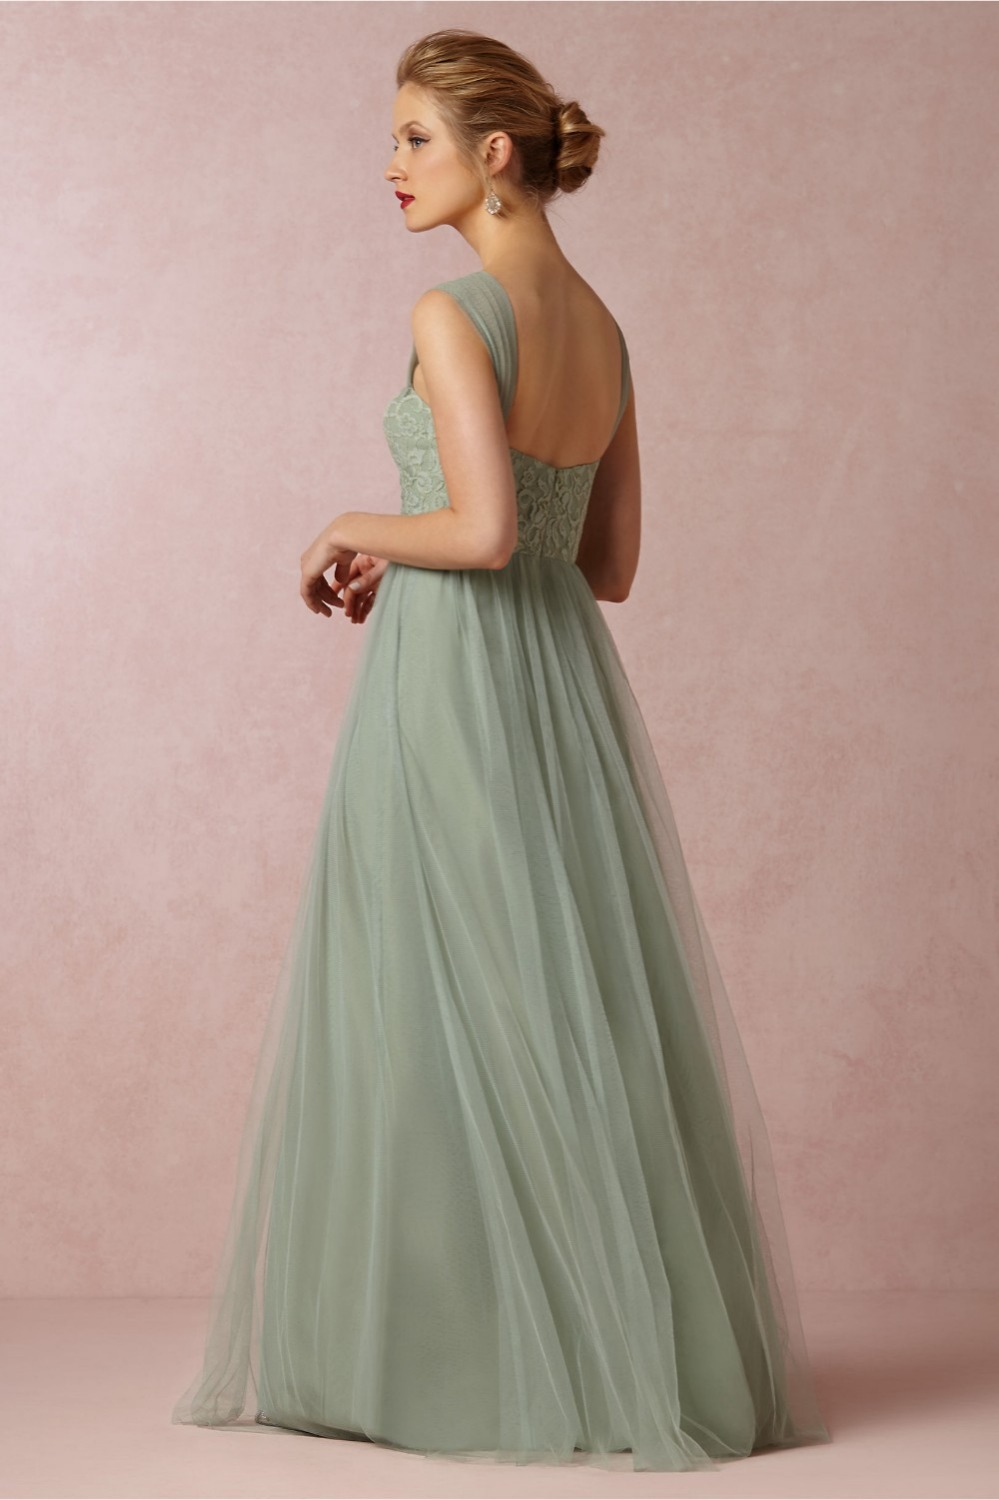 Vintage bridesmaid dresses lace and tulle long mint green vintage bridesmaid dresses lace and tulle long mint green bridesmaid dress two styles vestidos wedding party dress 2016 in bridesmaid dresses from weddings ombrellifo Gallery